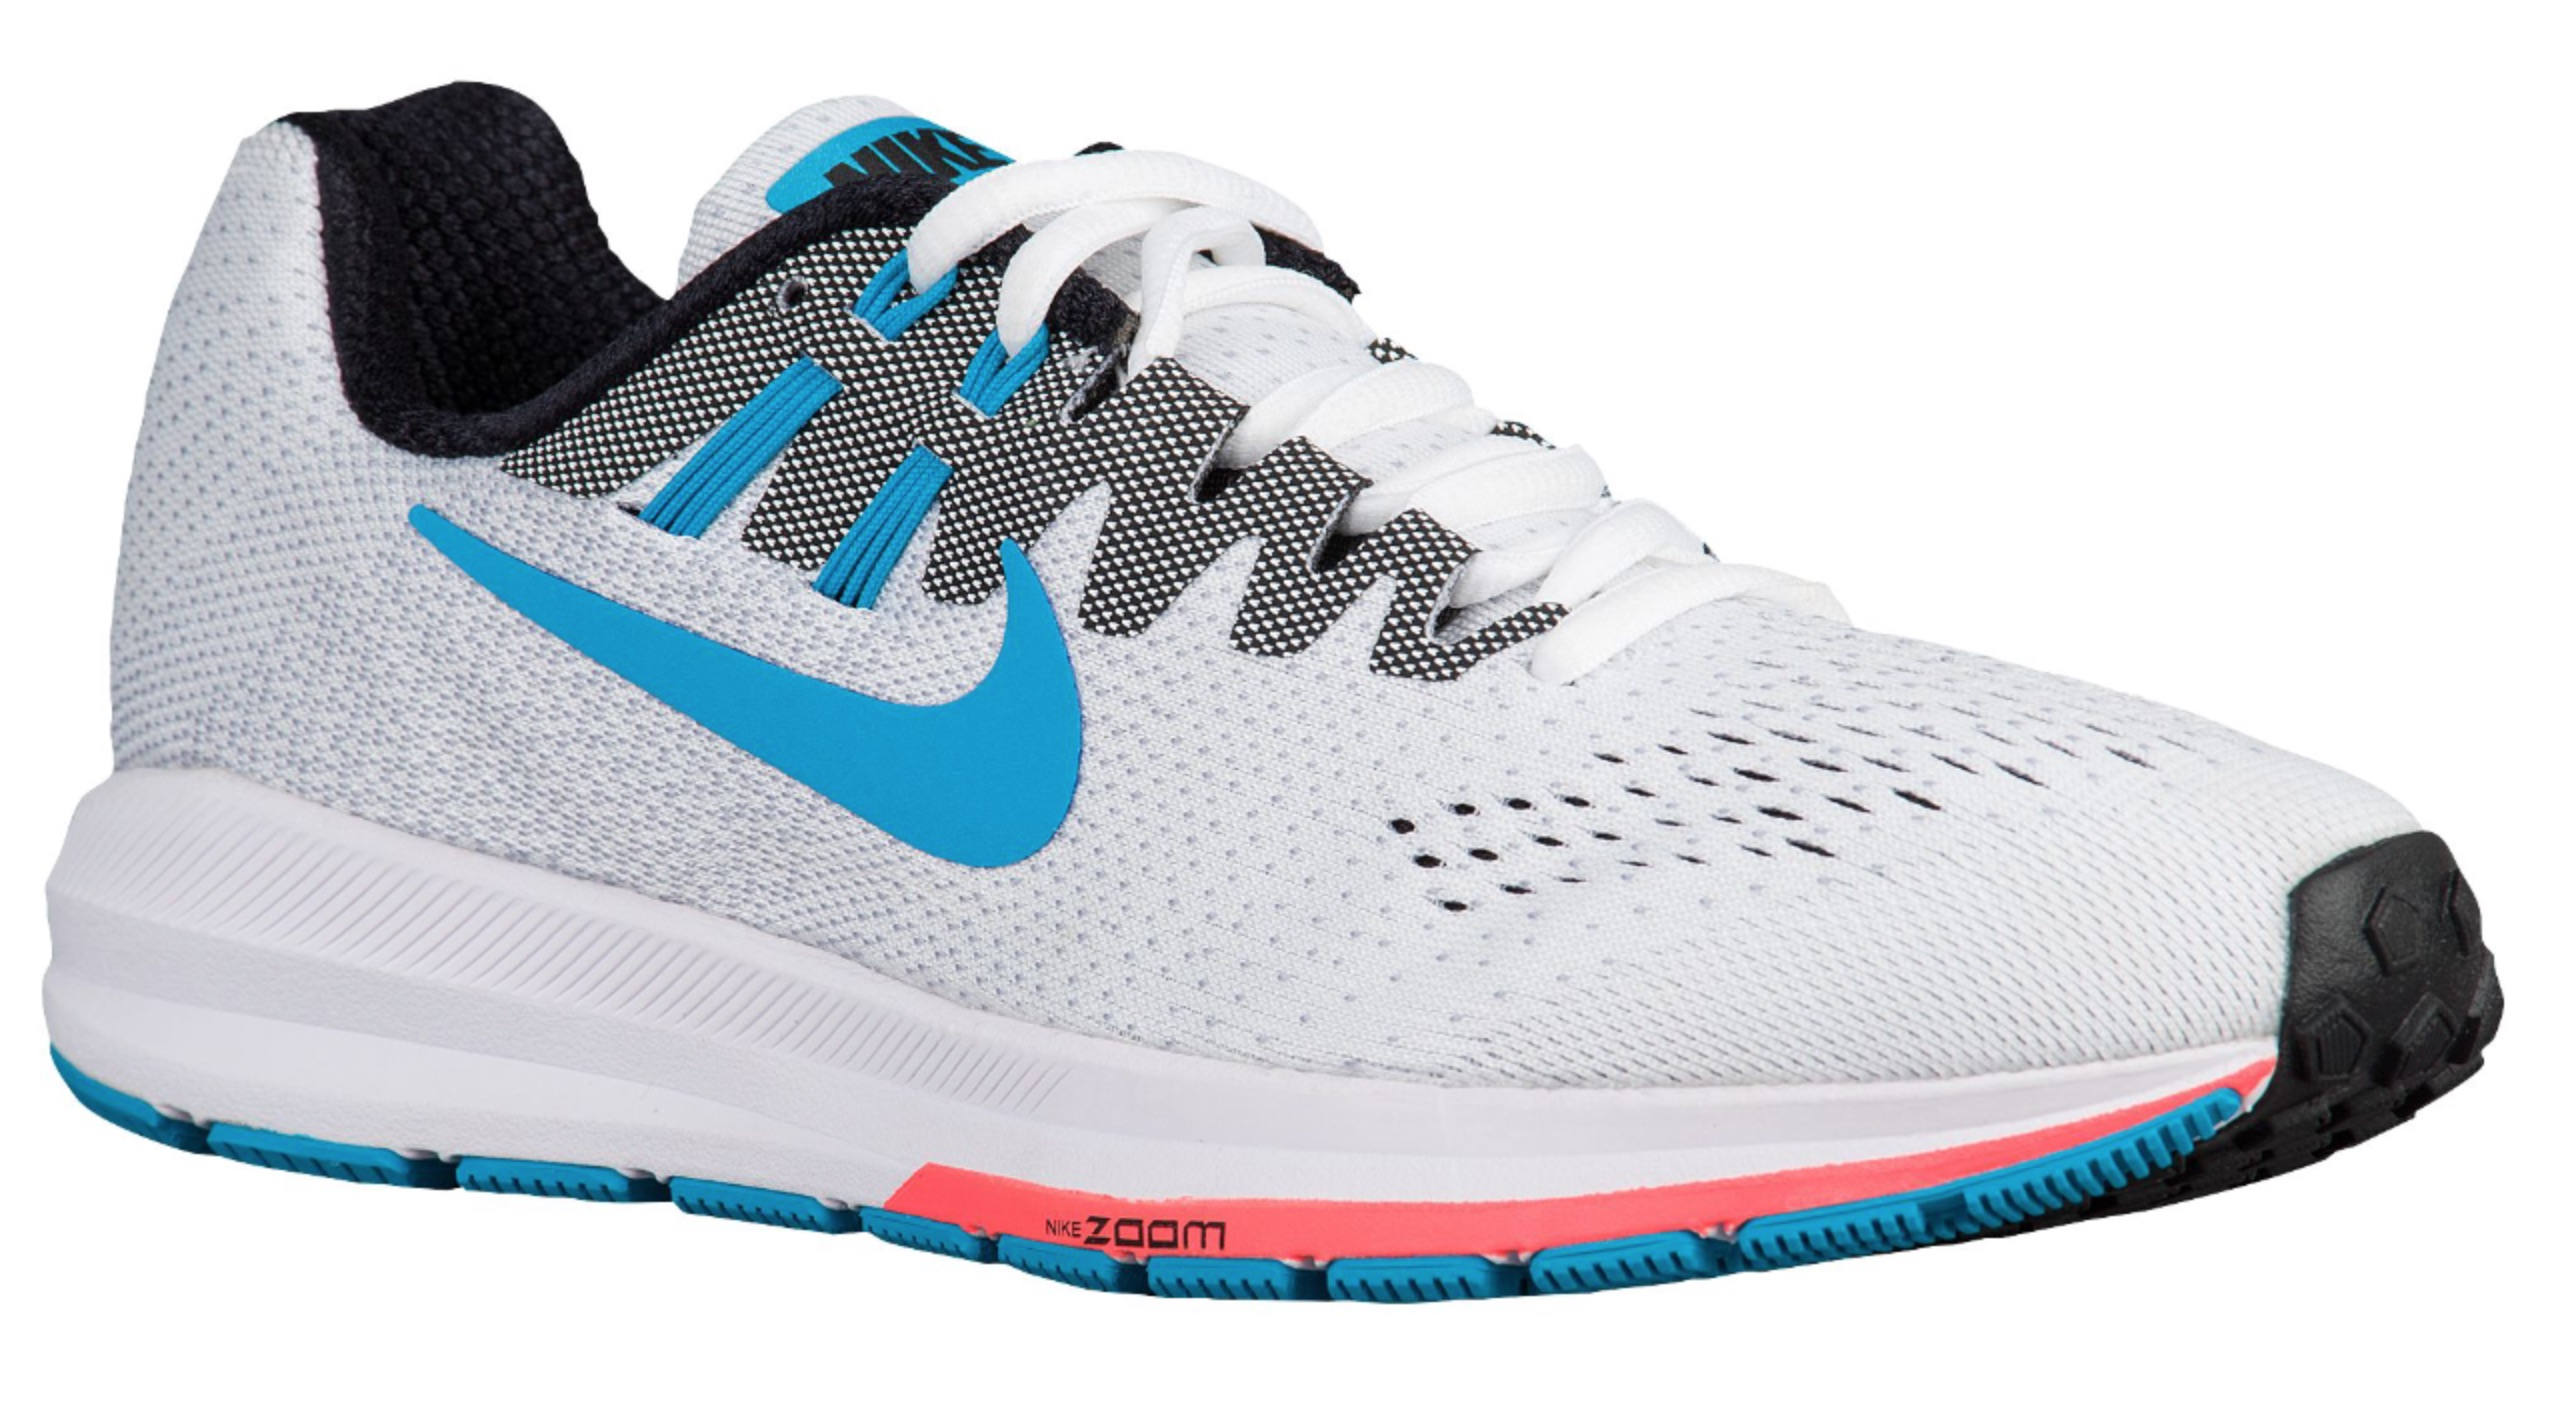 541d9293bb4b4 nike-air-zoom-structure-20-2 - WearTesters